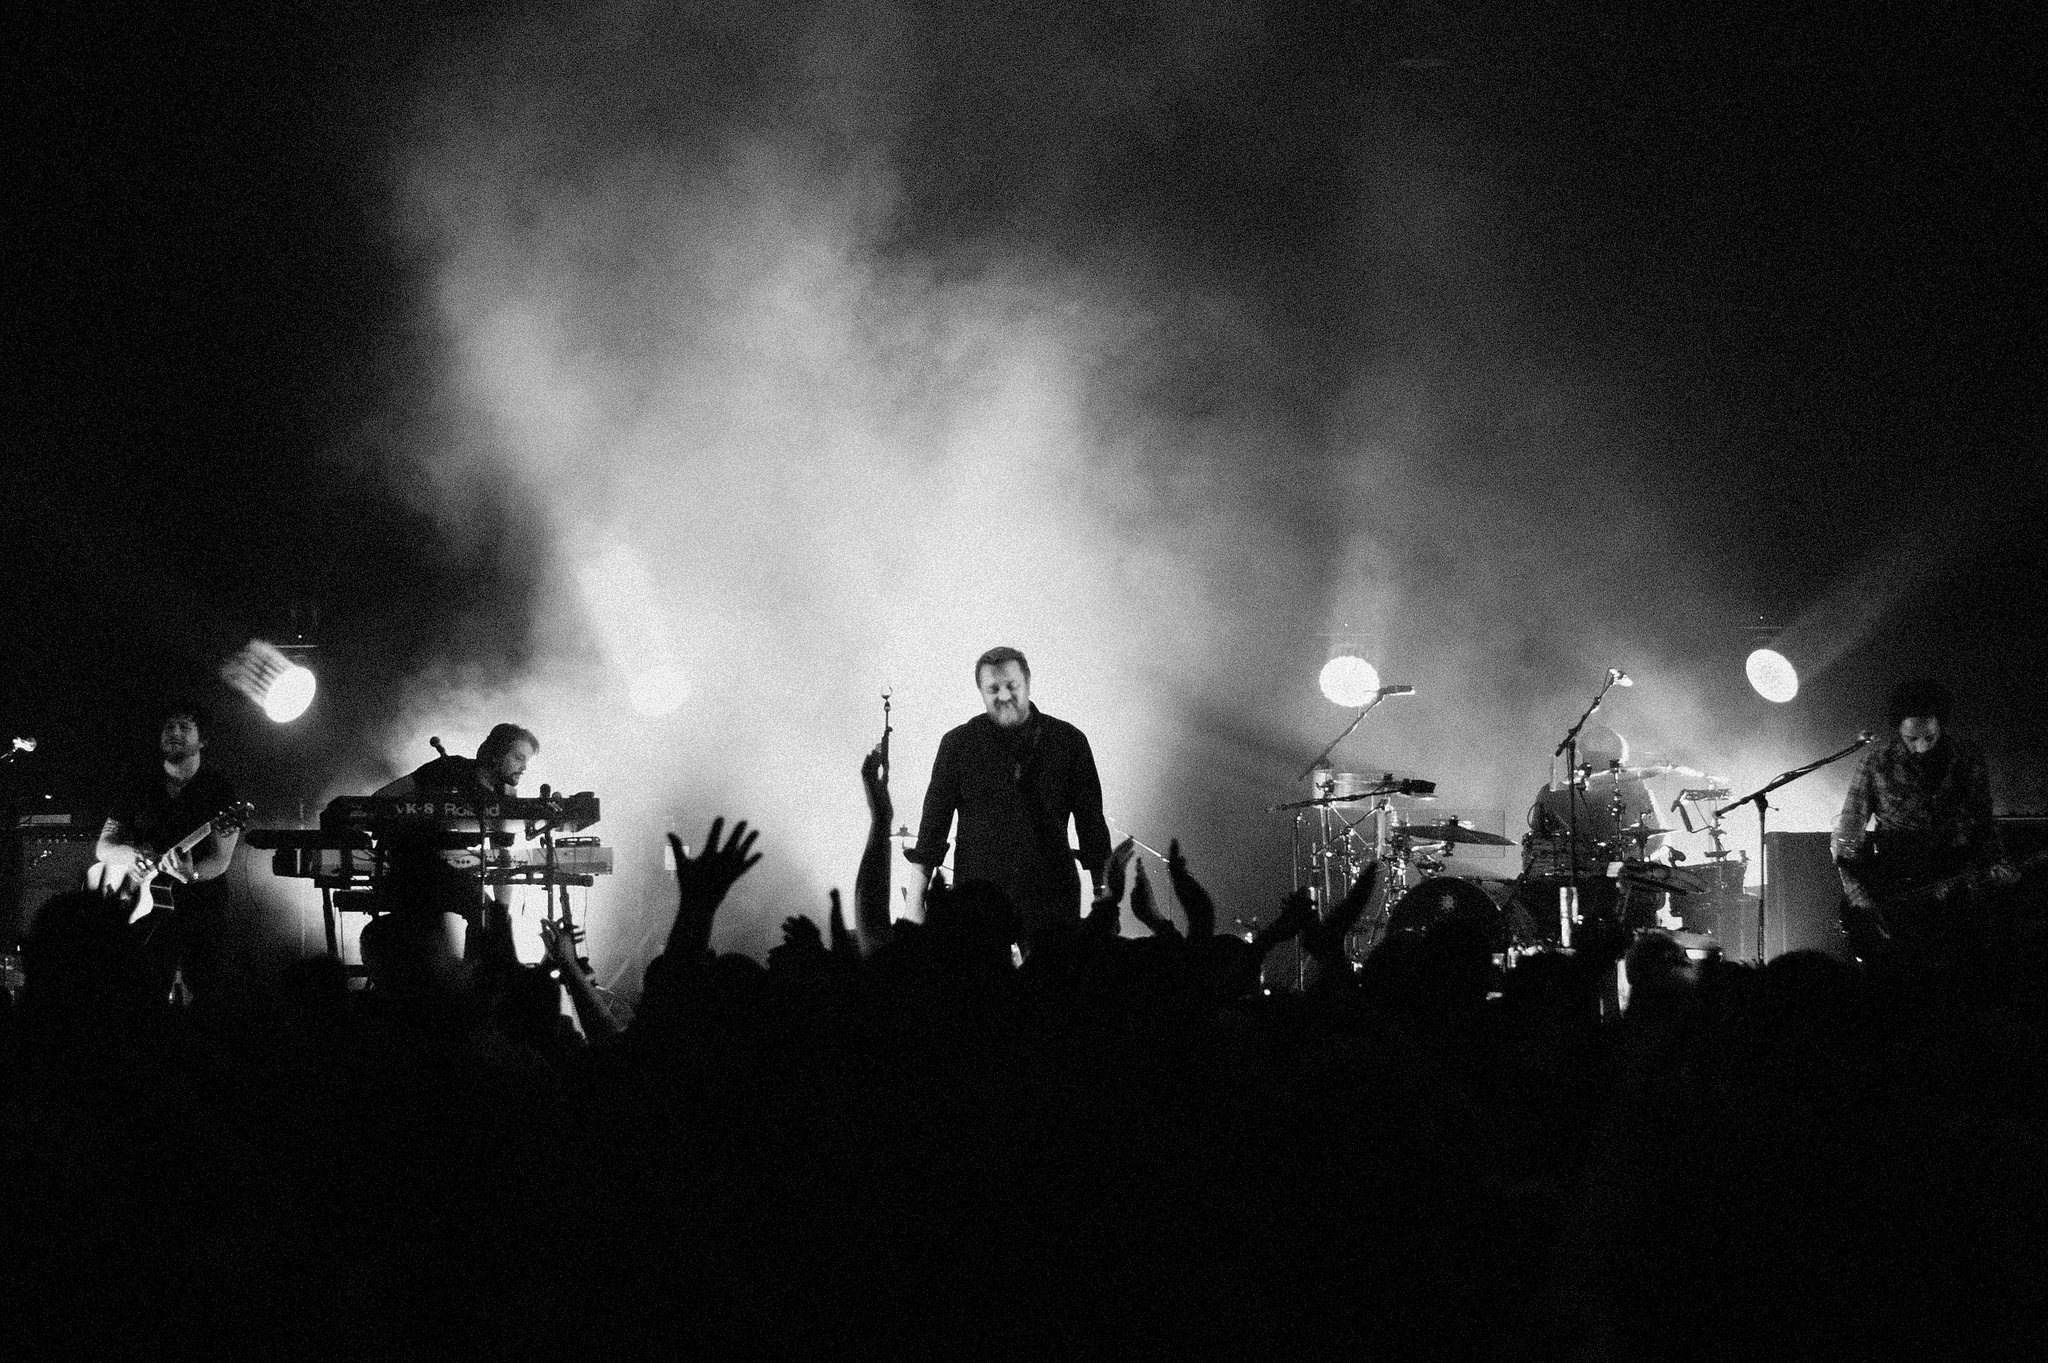 Elbow perform a gig live on stage in London.